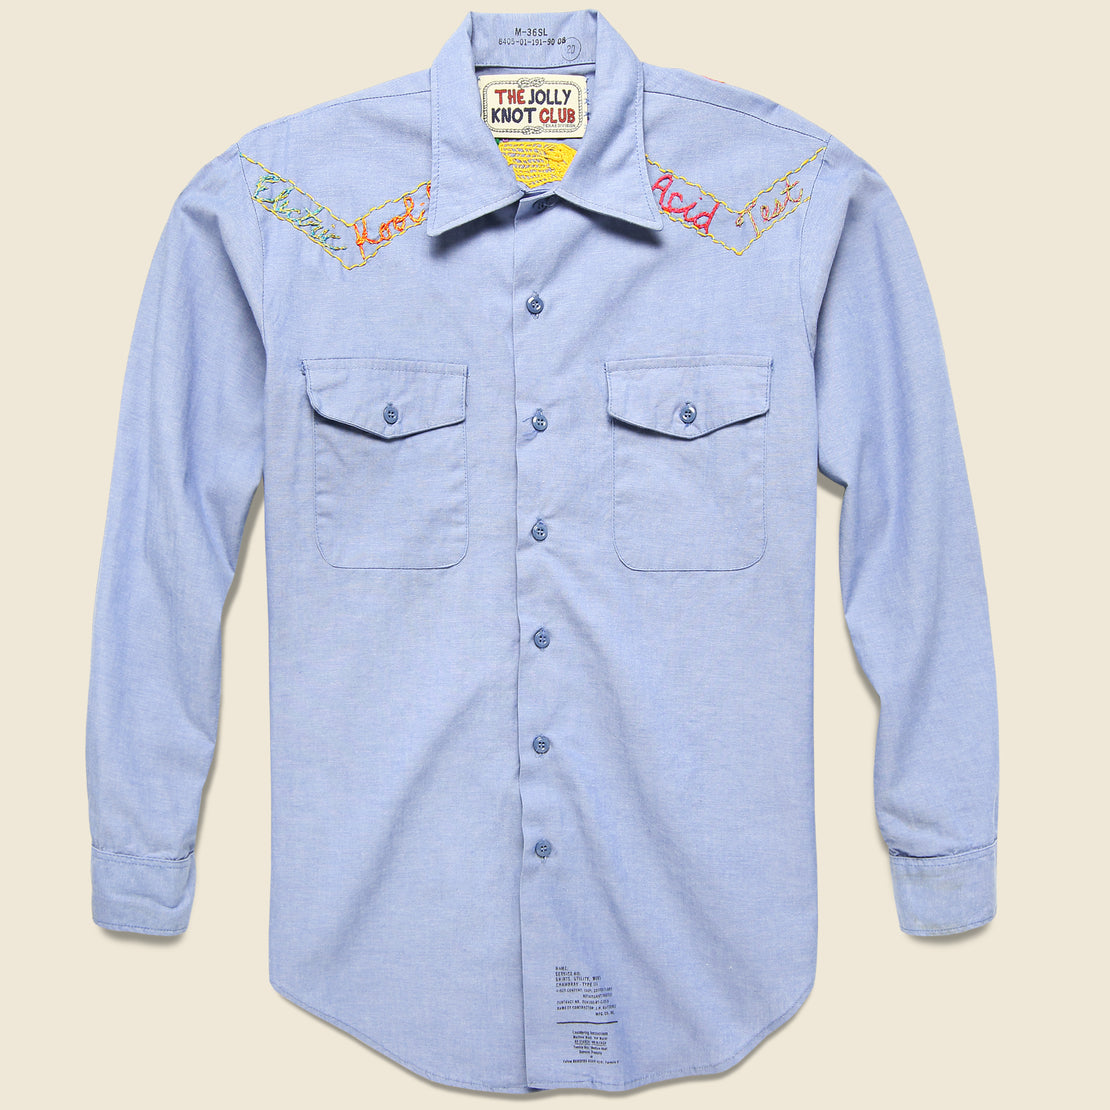 Embroidered Chambray Shirt - Electric Kool-Aid Acid Test